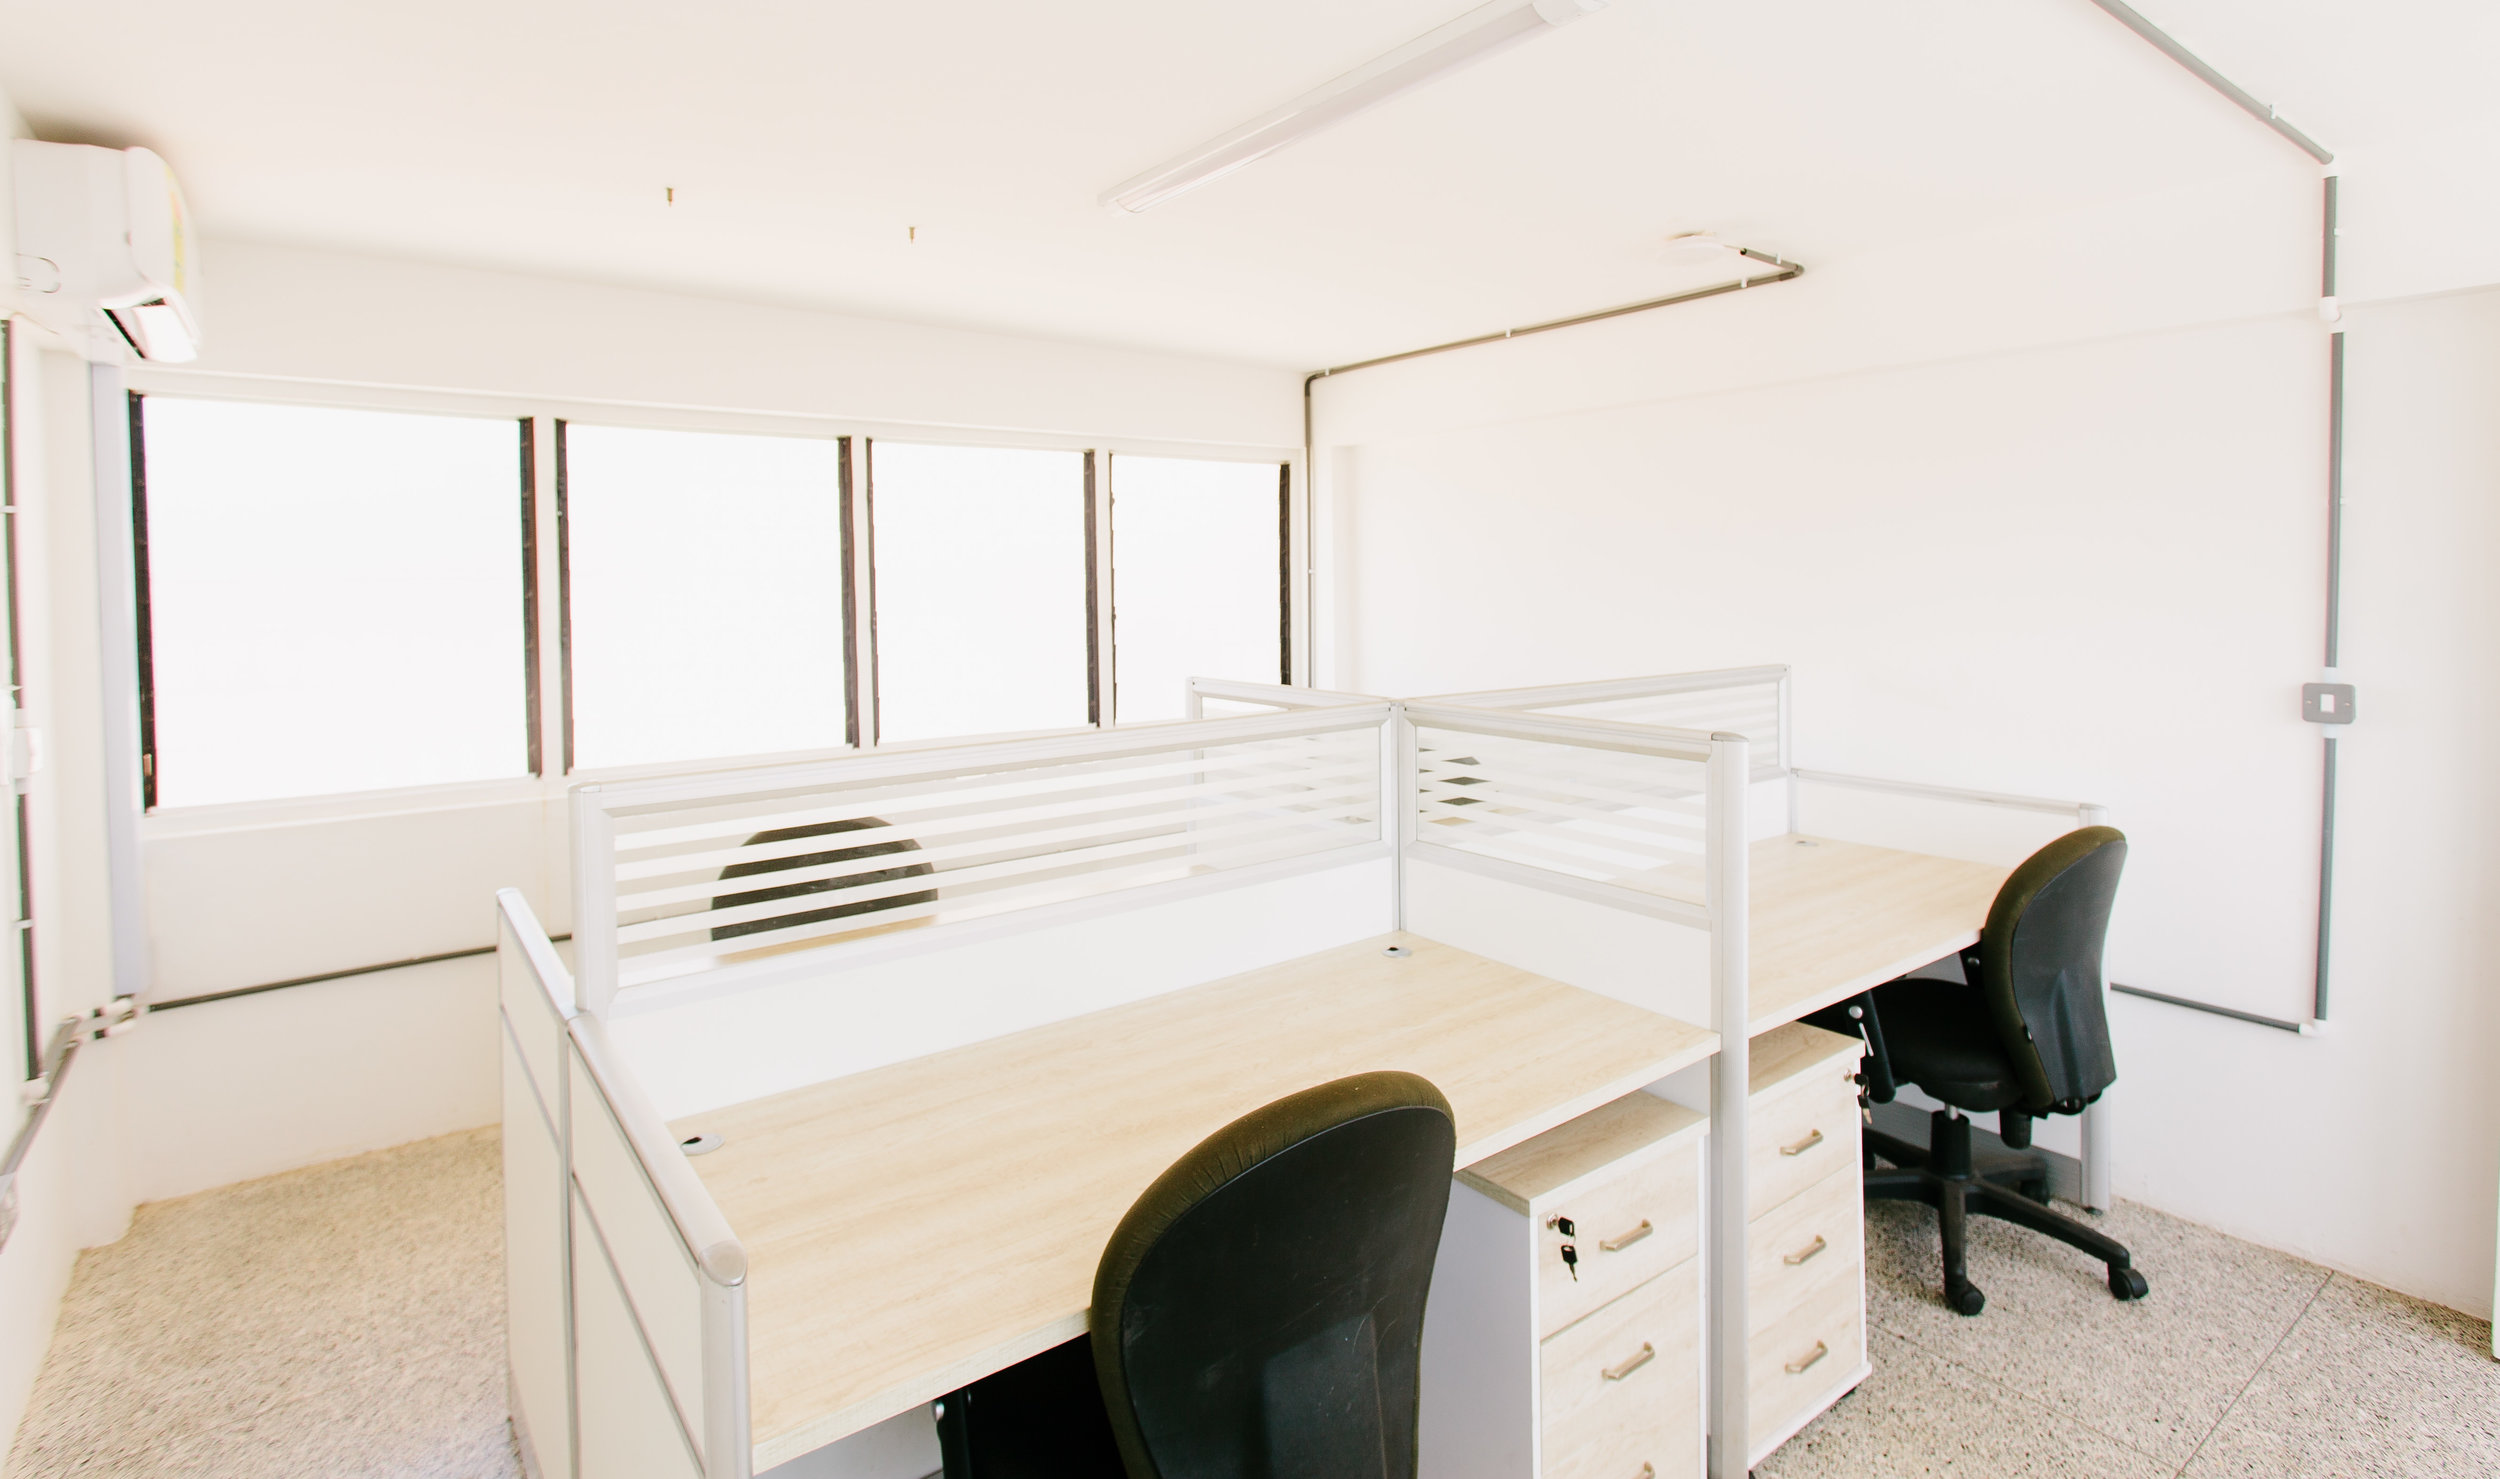 private office - - $750/month + 1 months security deposit- Furnished, air-conditioned private office for your company.- Free use of meeting room 3 hours x month bookable in advance- All utilities included (internet, back up generator, security, cleaning, water and electricity)- Payable monthly in advance (discount available if take for 3 months advance)- 1 Month Security Deposit required